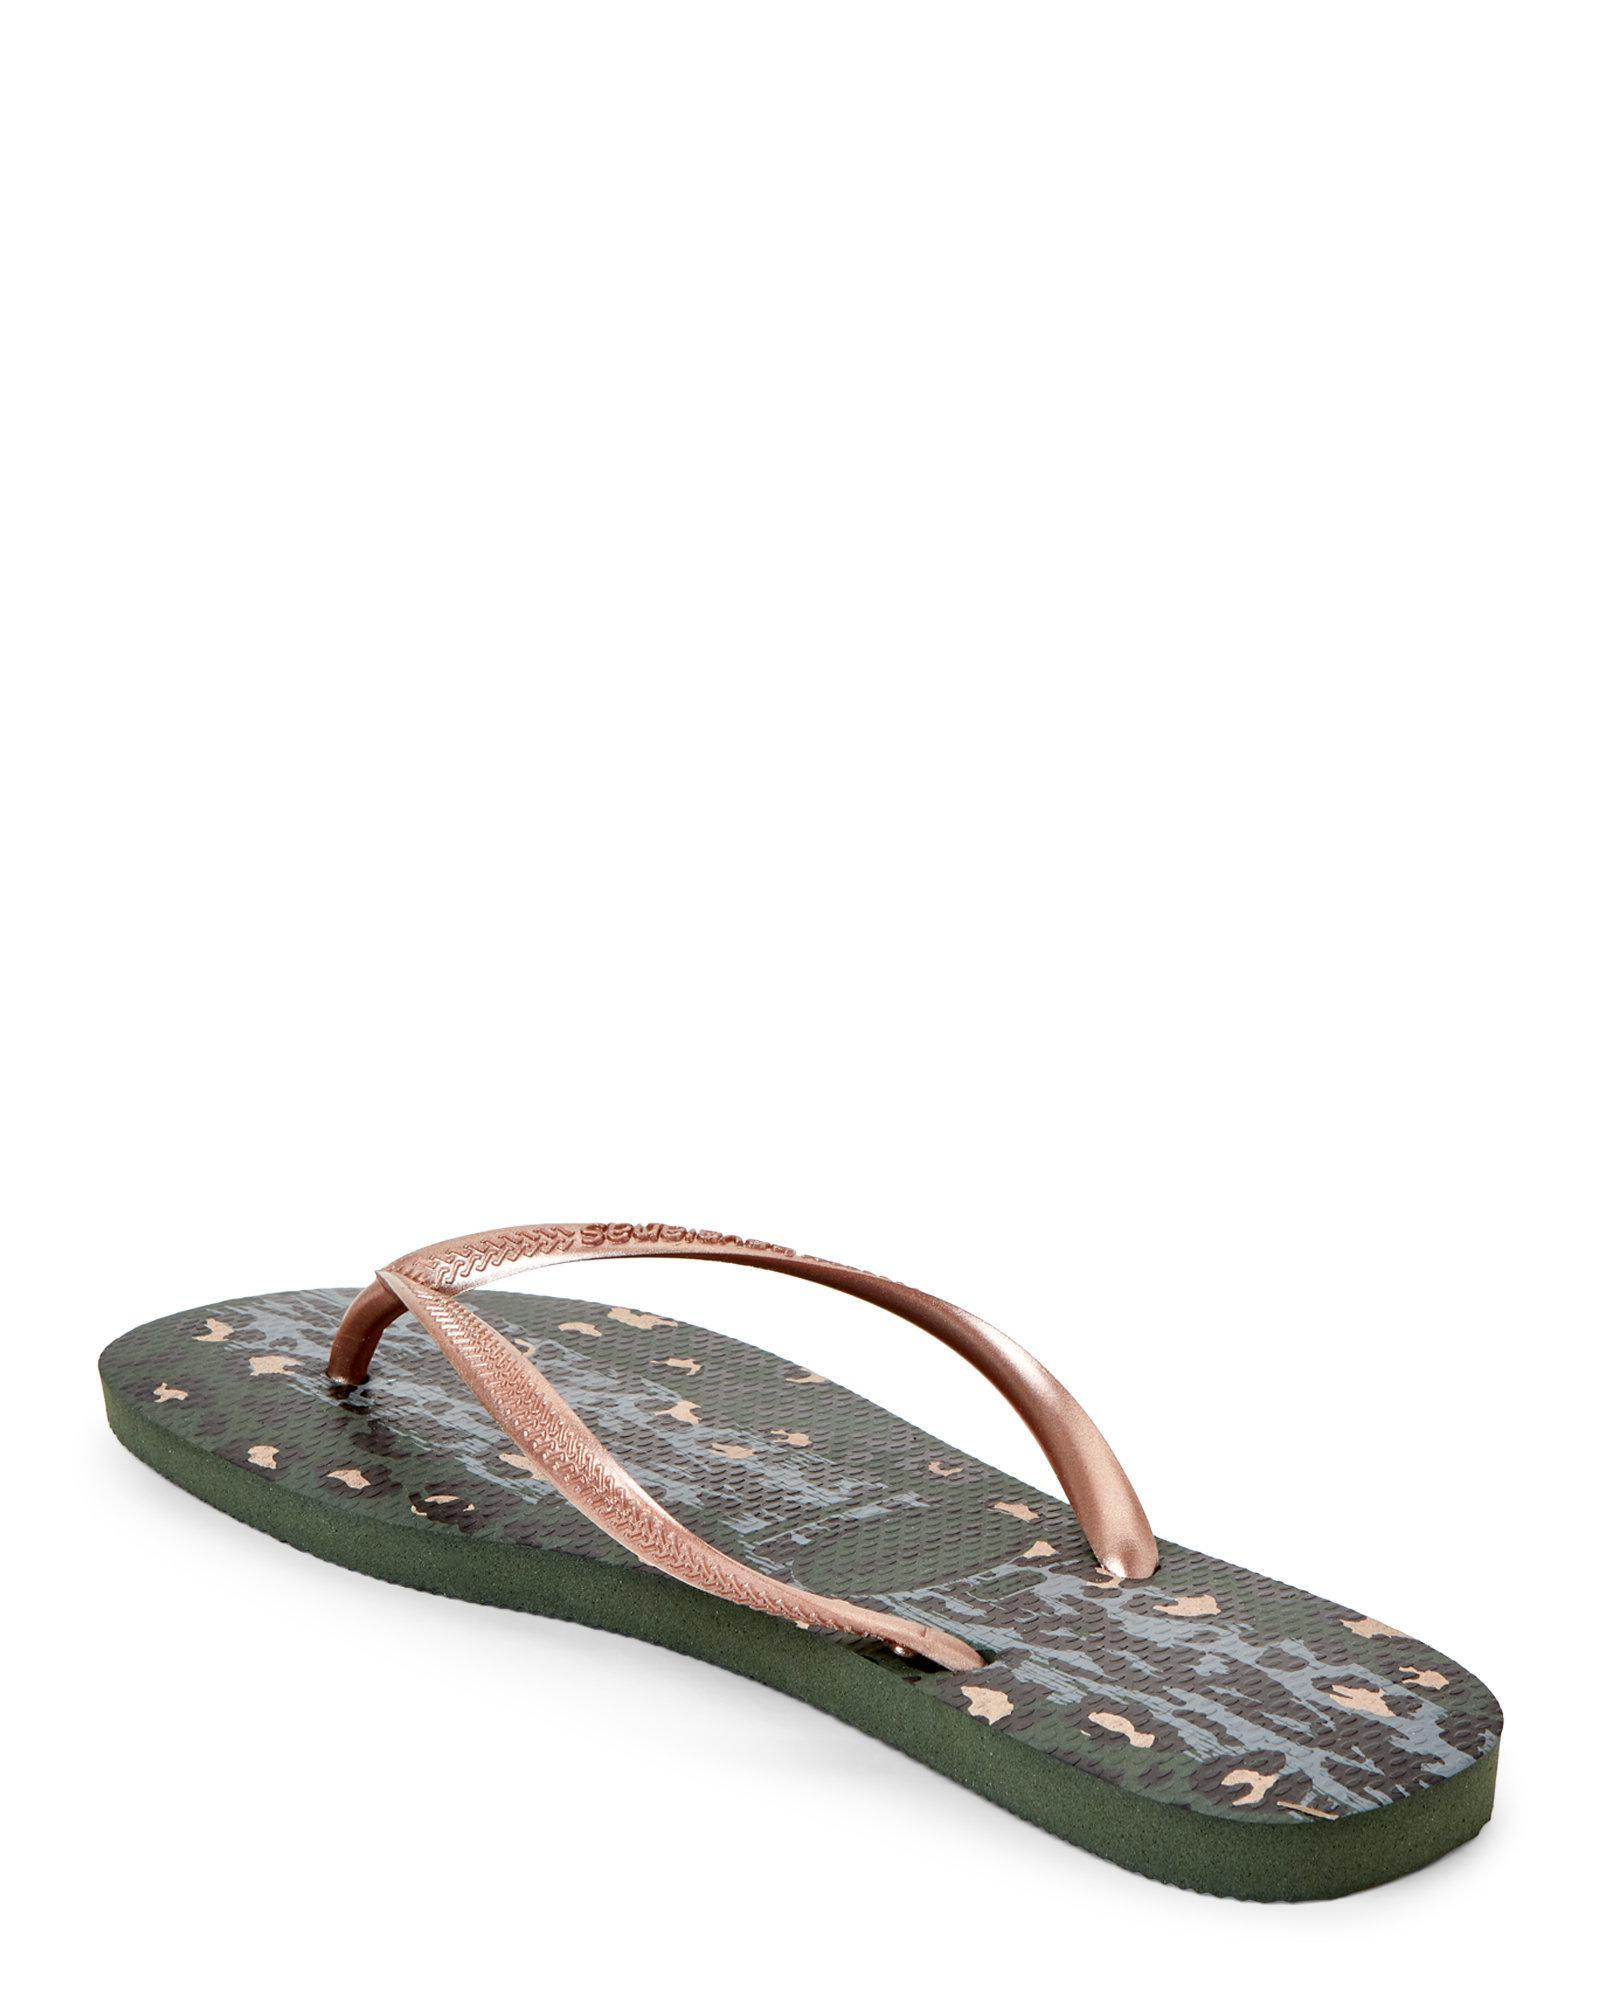 ce8190333bfe0 Lyst - Havaianas Olive   Rose Gold Slim Animals Flip Flops